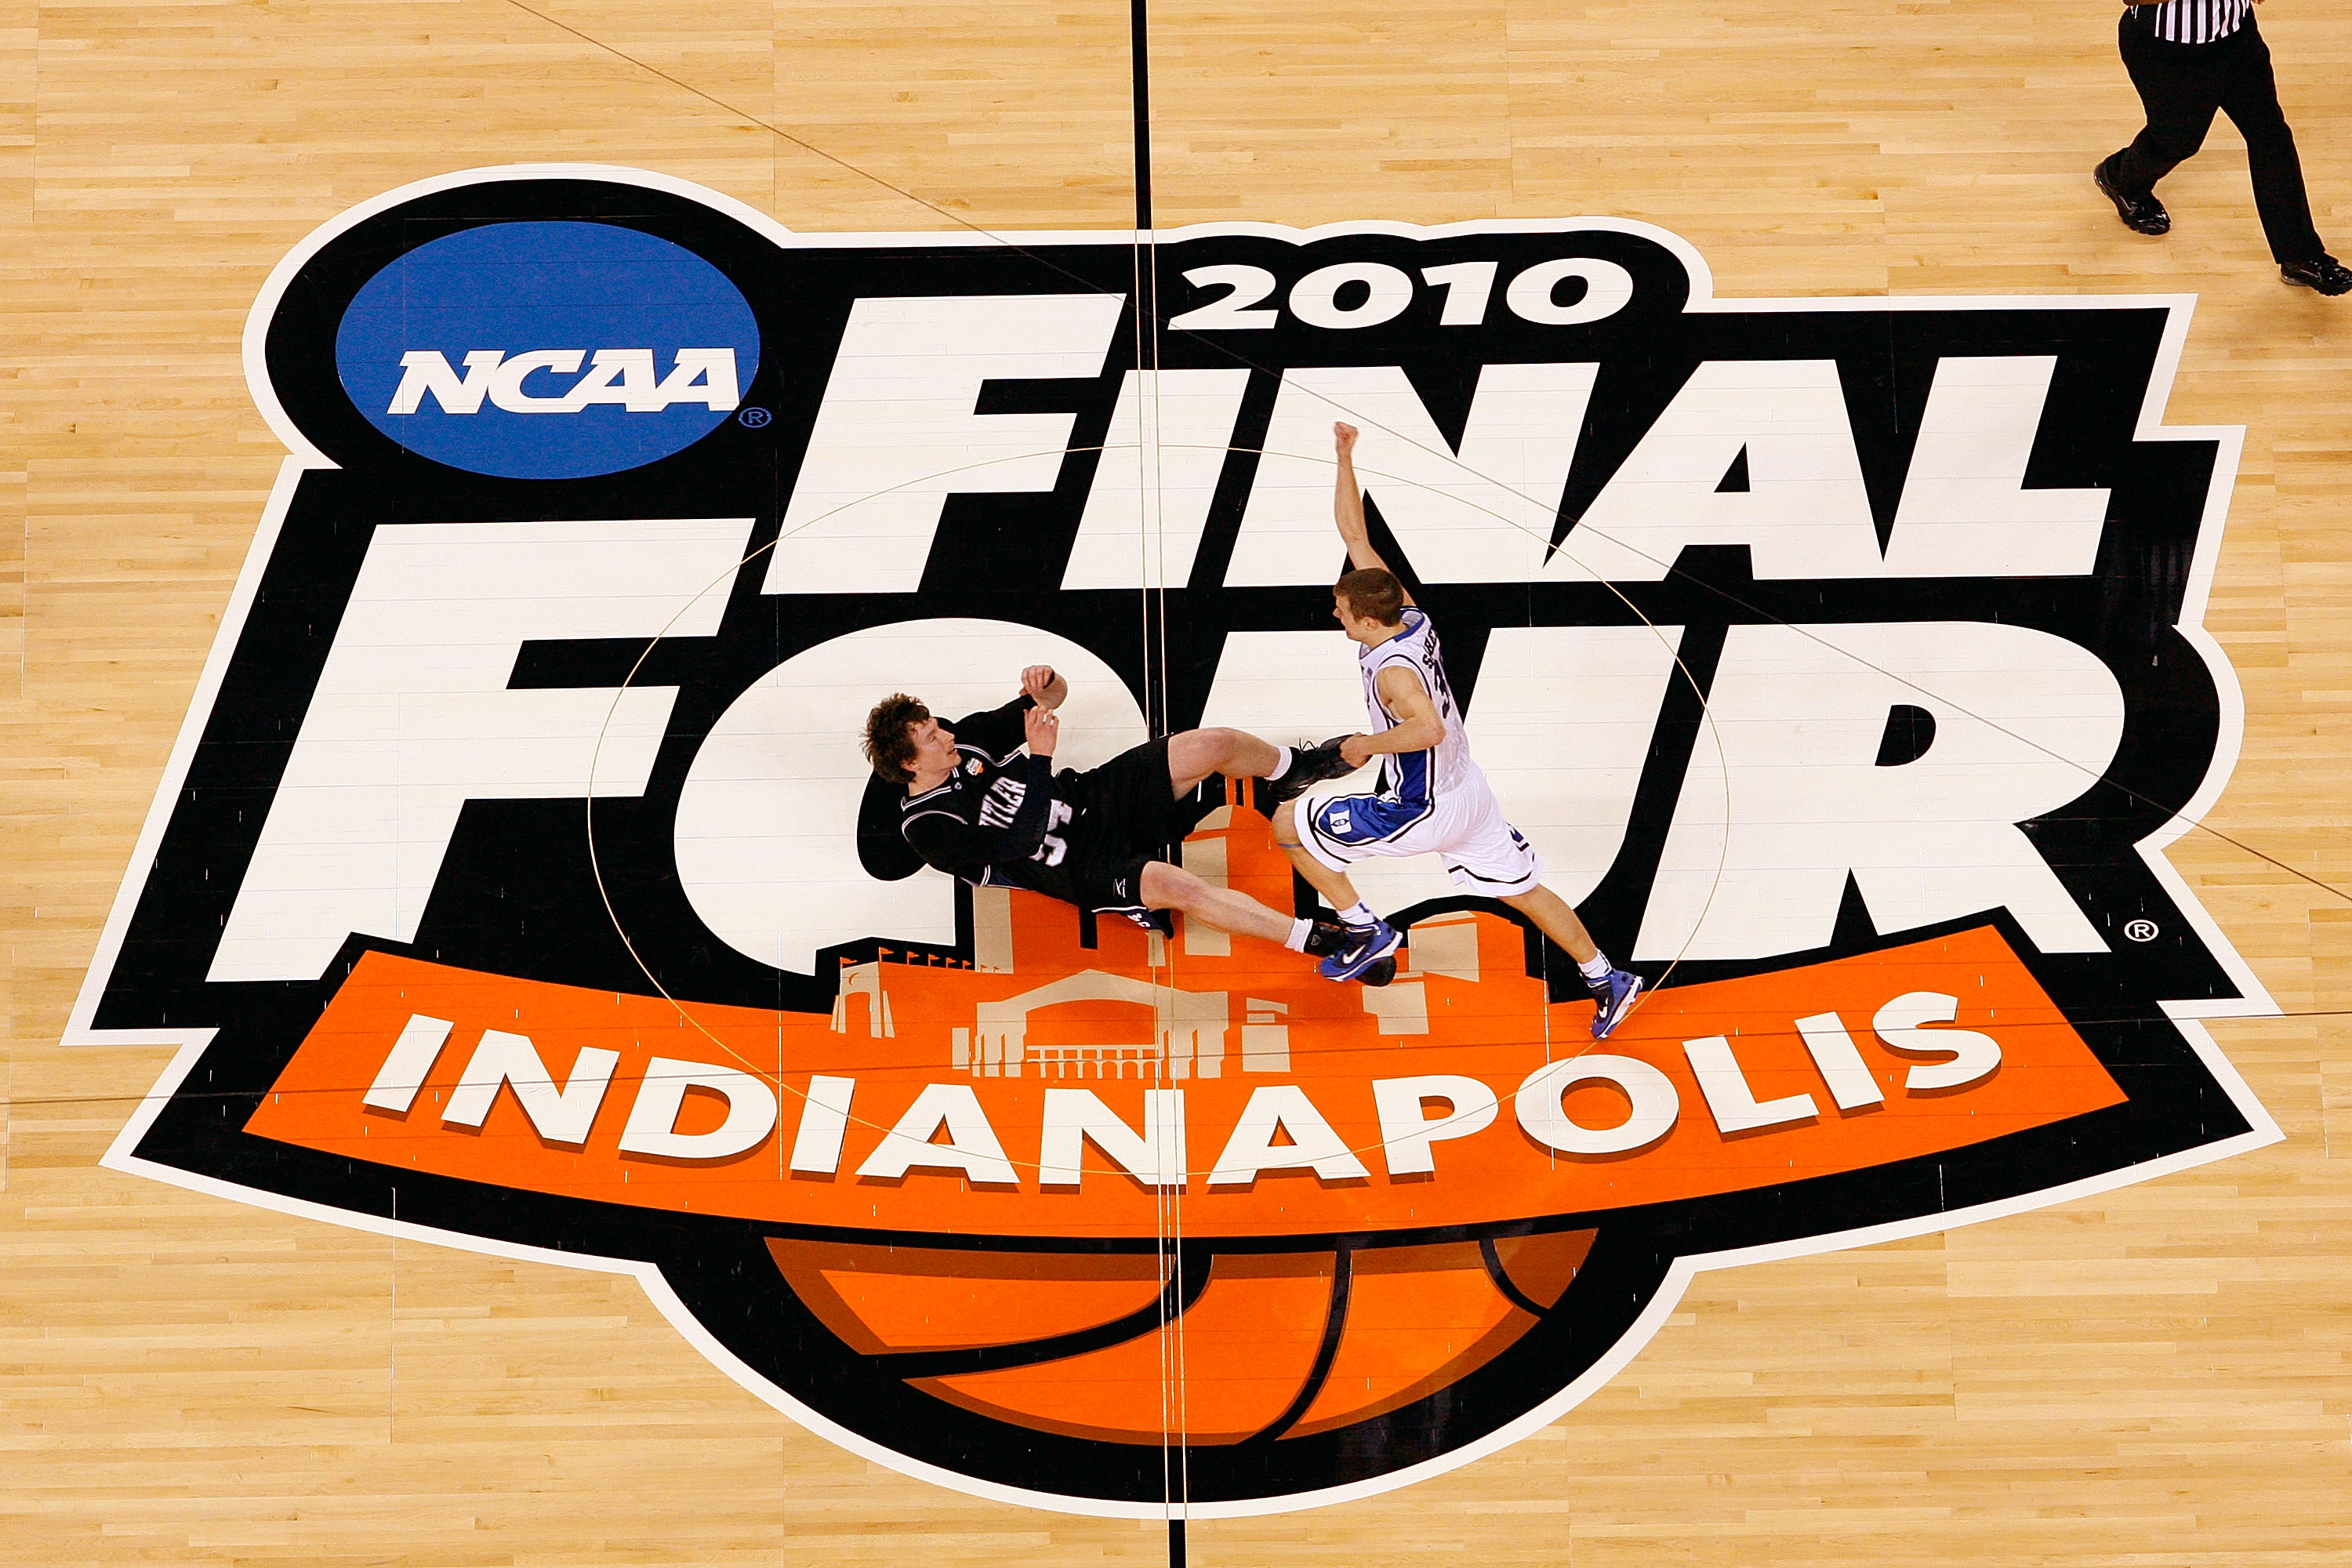 INDIANAPOLIS - APRIL 05:  Jon Scheyer #30 of the Duke Blue Devils celebrates after they won 61-59 against Matt Howard #54 (lying on the court at L) of the Butler Bulldogs during the 2010 NCAA Division I Men's Basketball National Championship game at Lucas